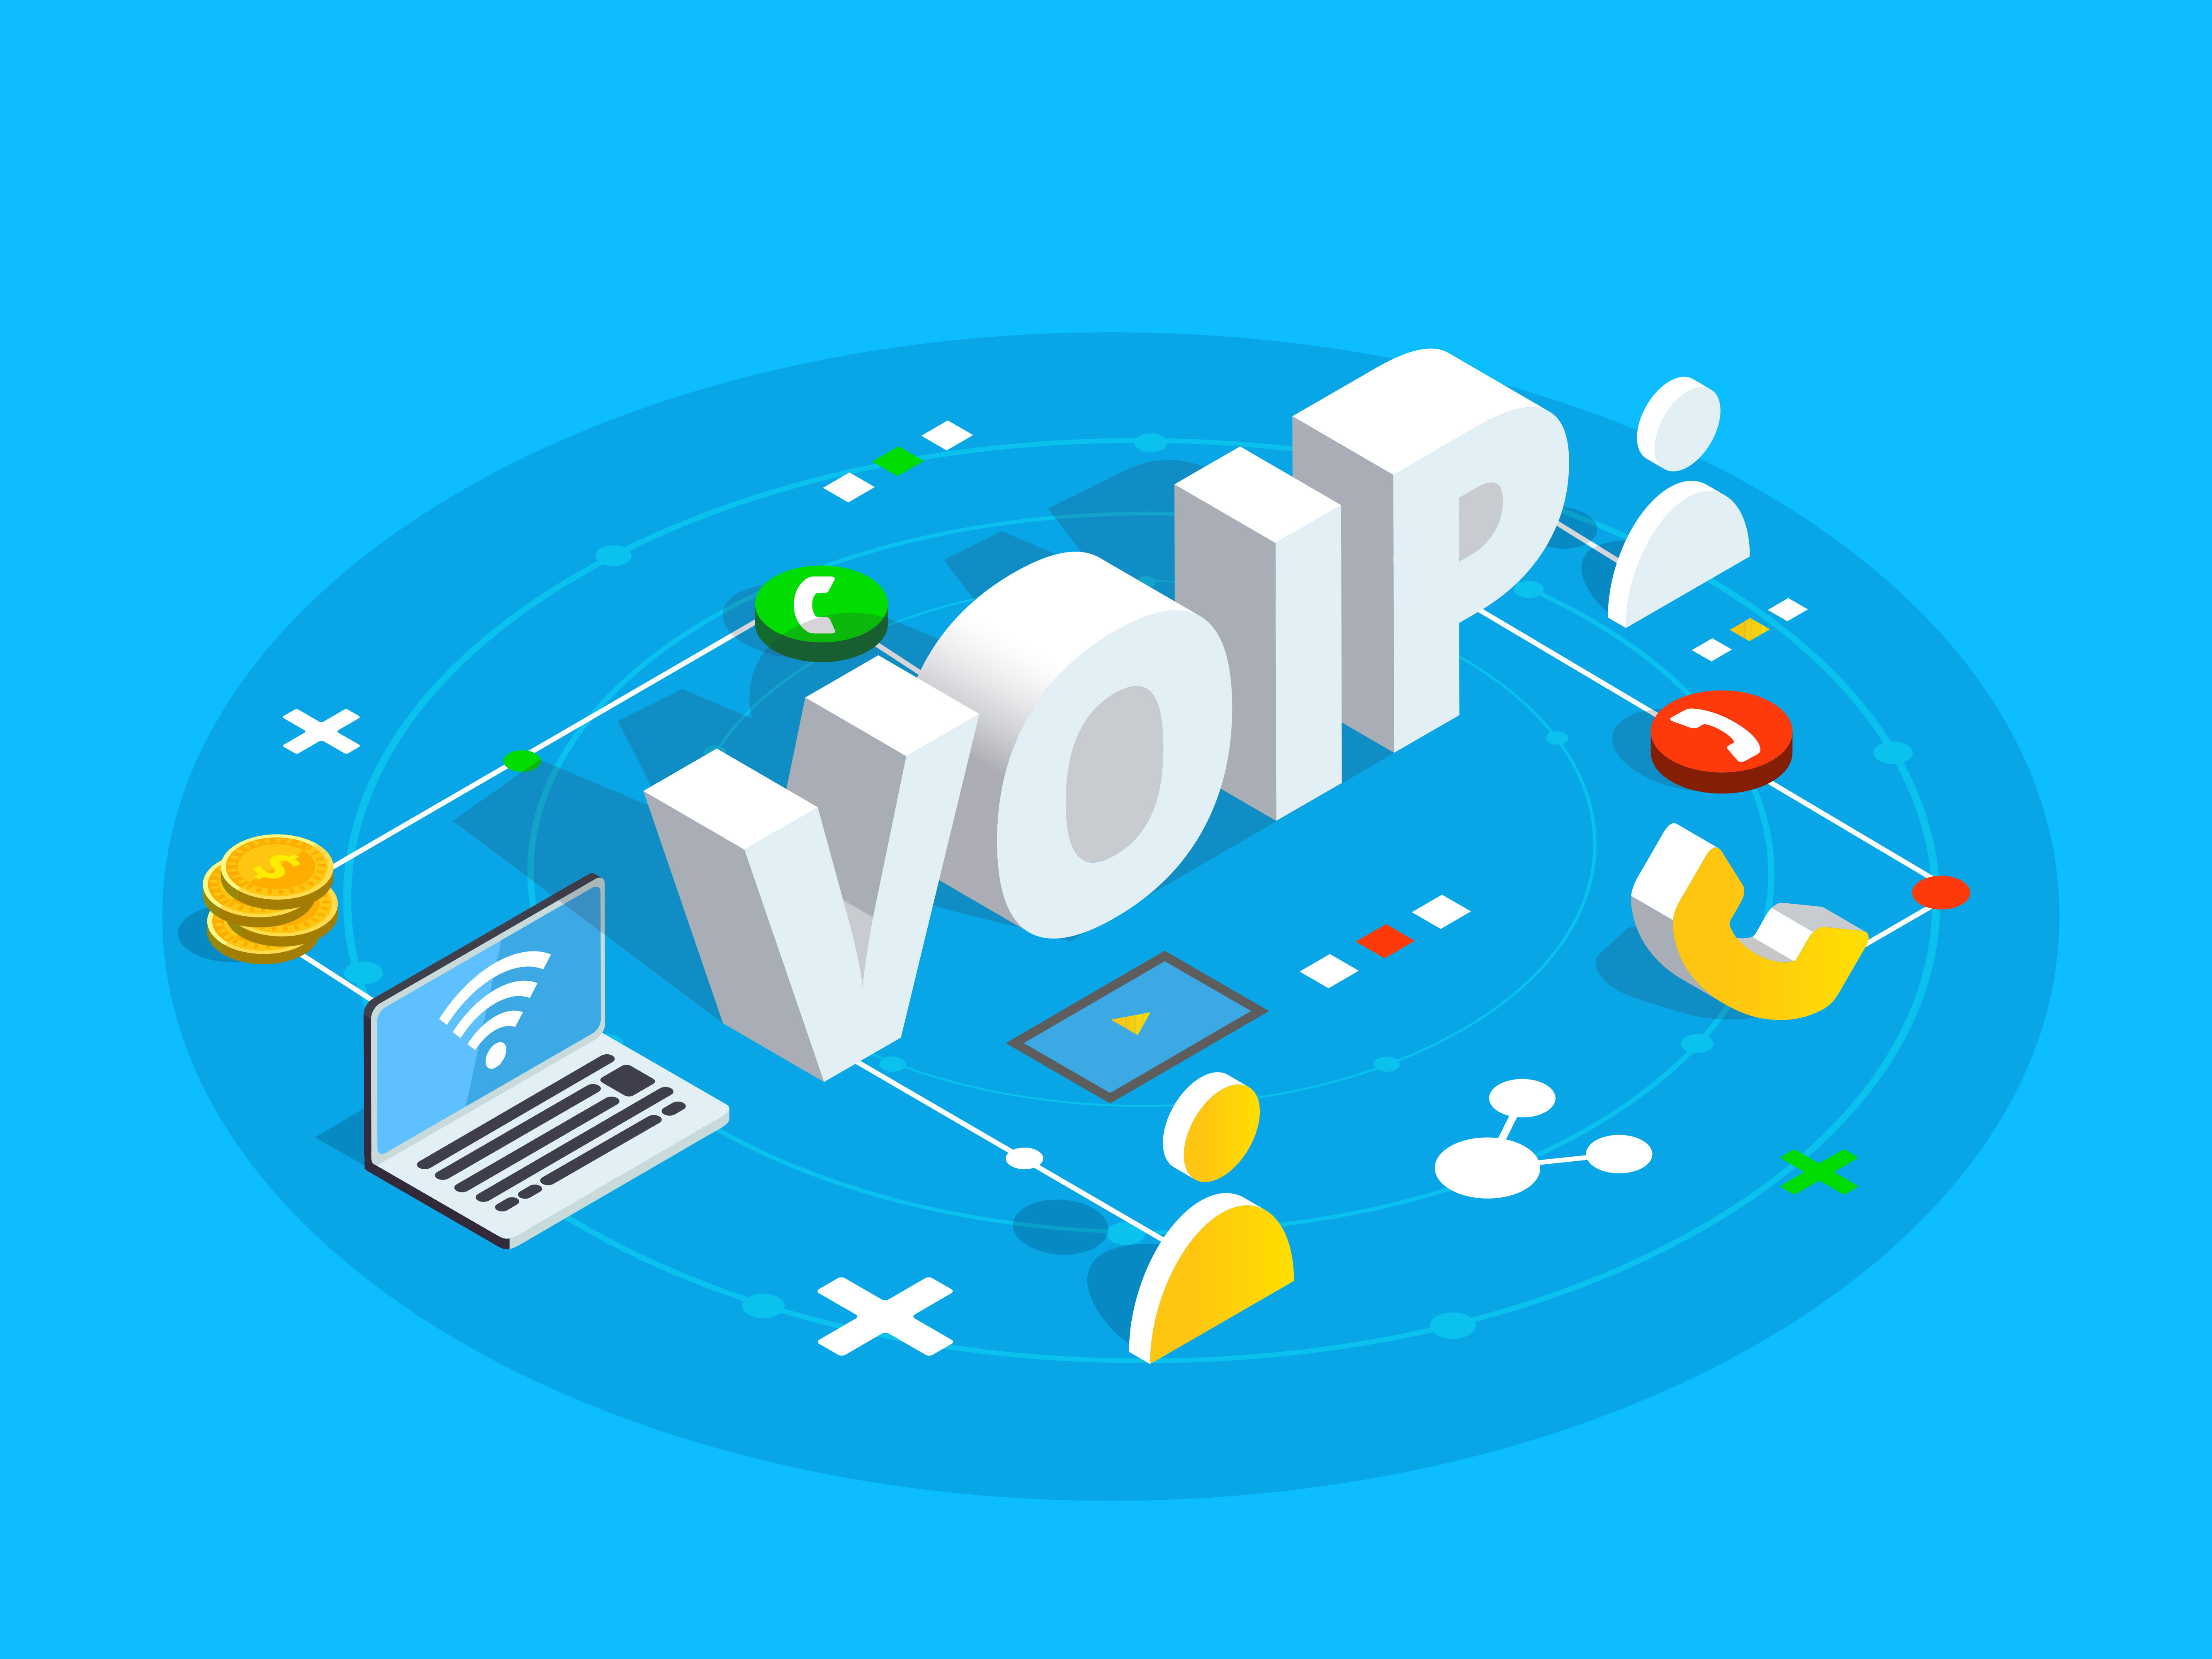 VoIP Systems Explained: What VoIP Means and Why It's Better